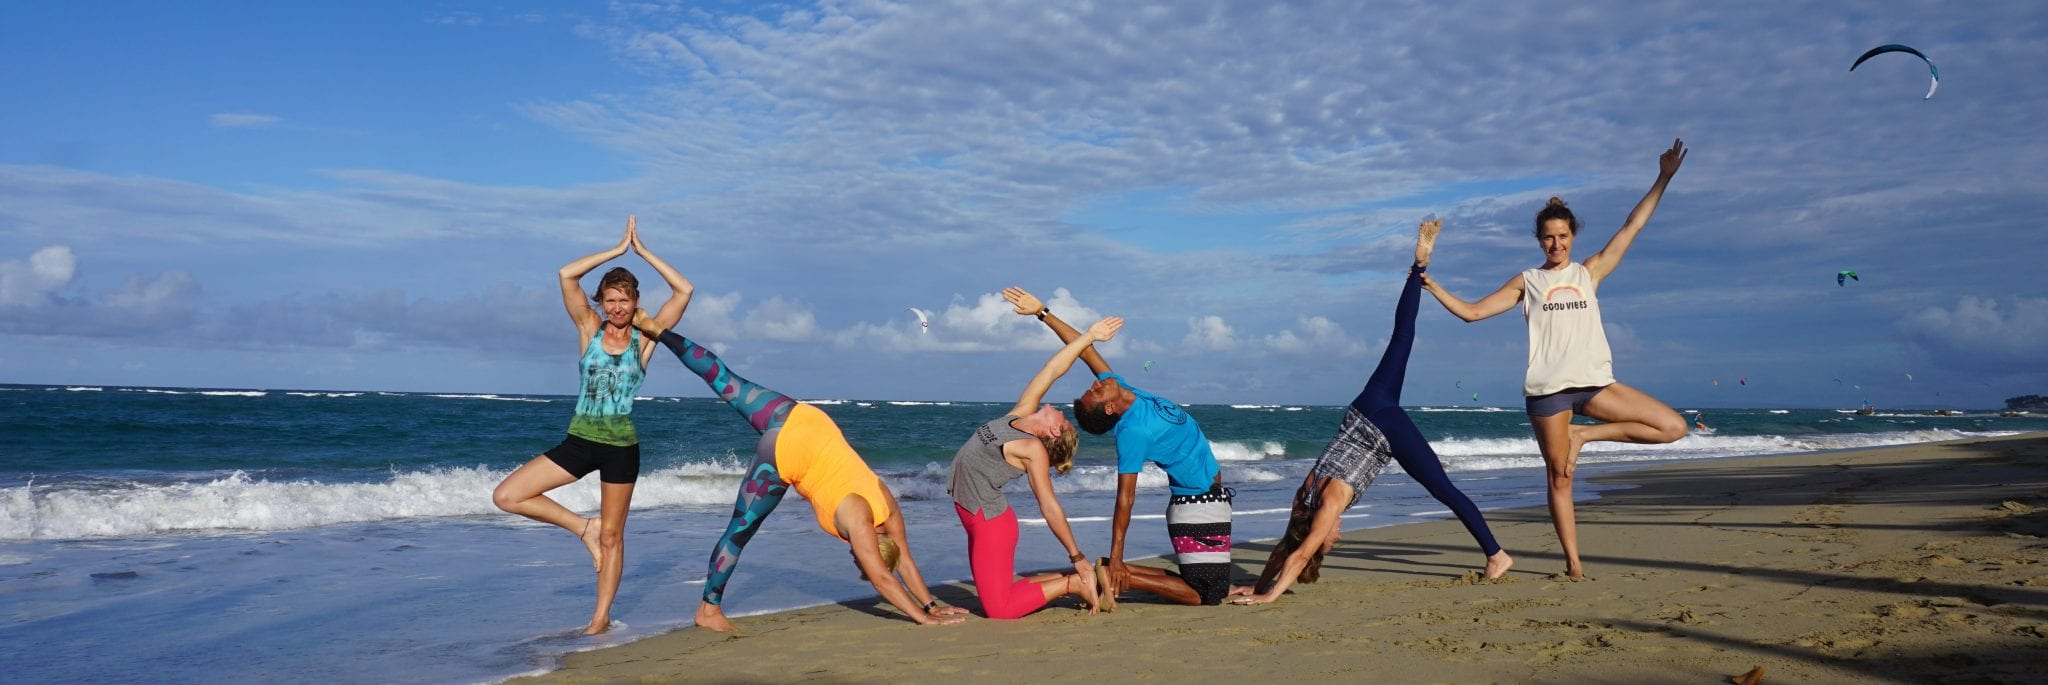 the yoga loft at kite beach in Cabarete Dominican Republic